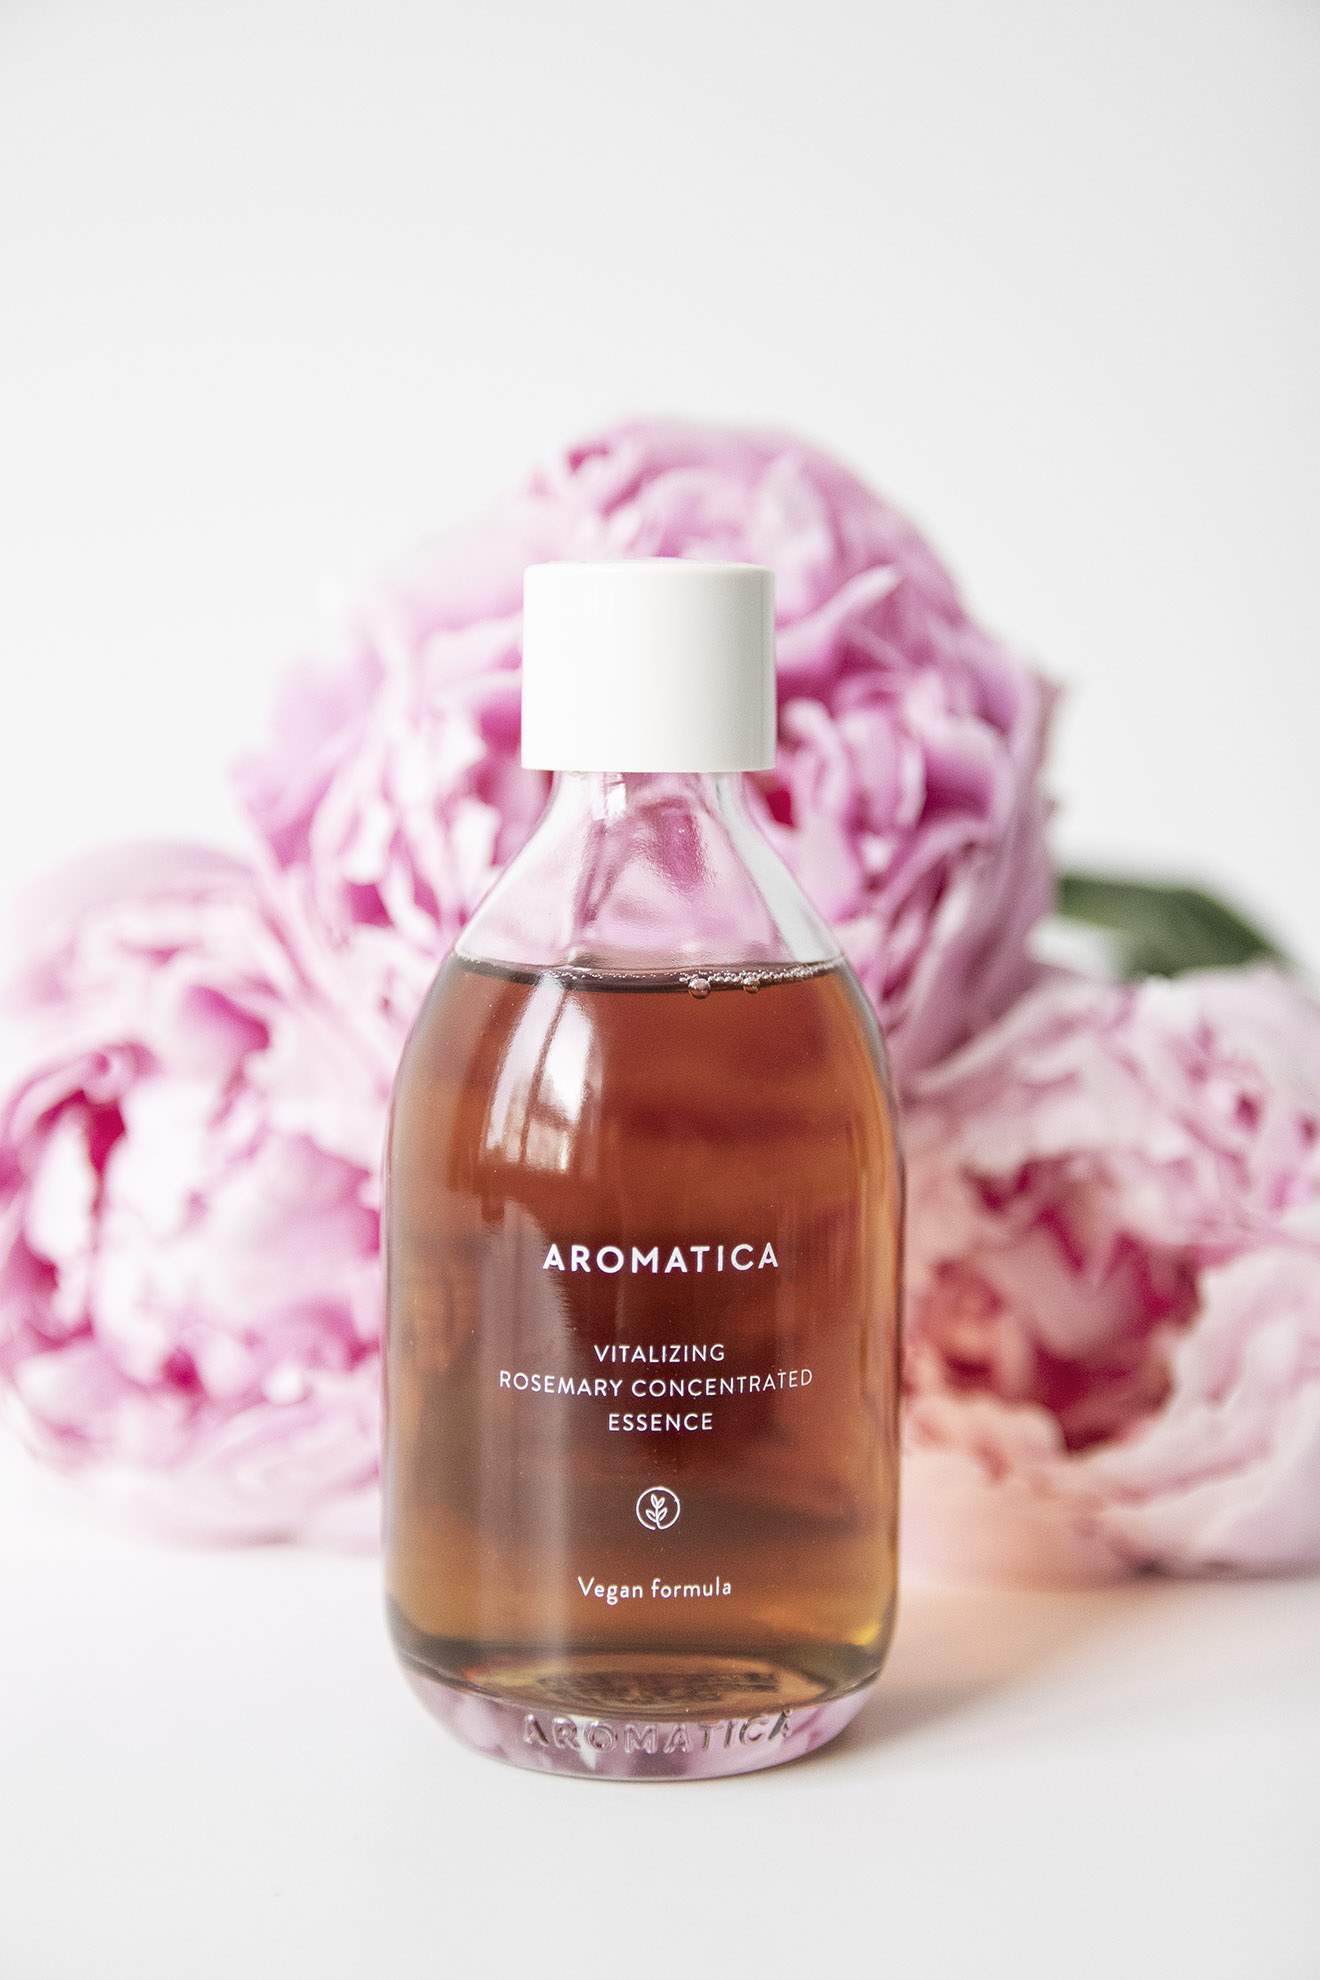 Aromatica Vitalizing Rosemary Concentrated Essence